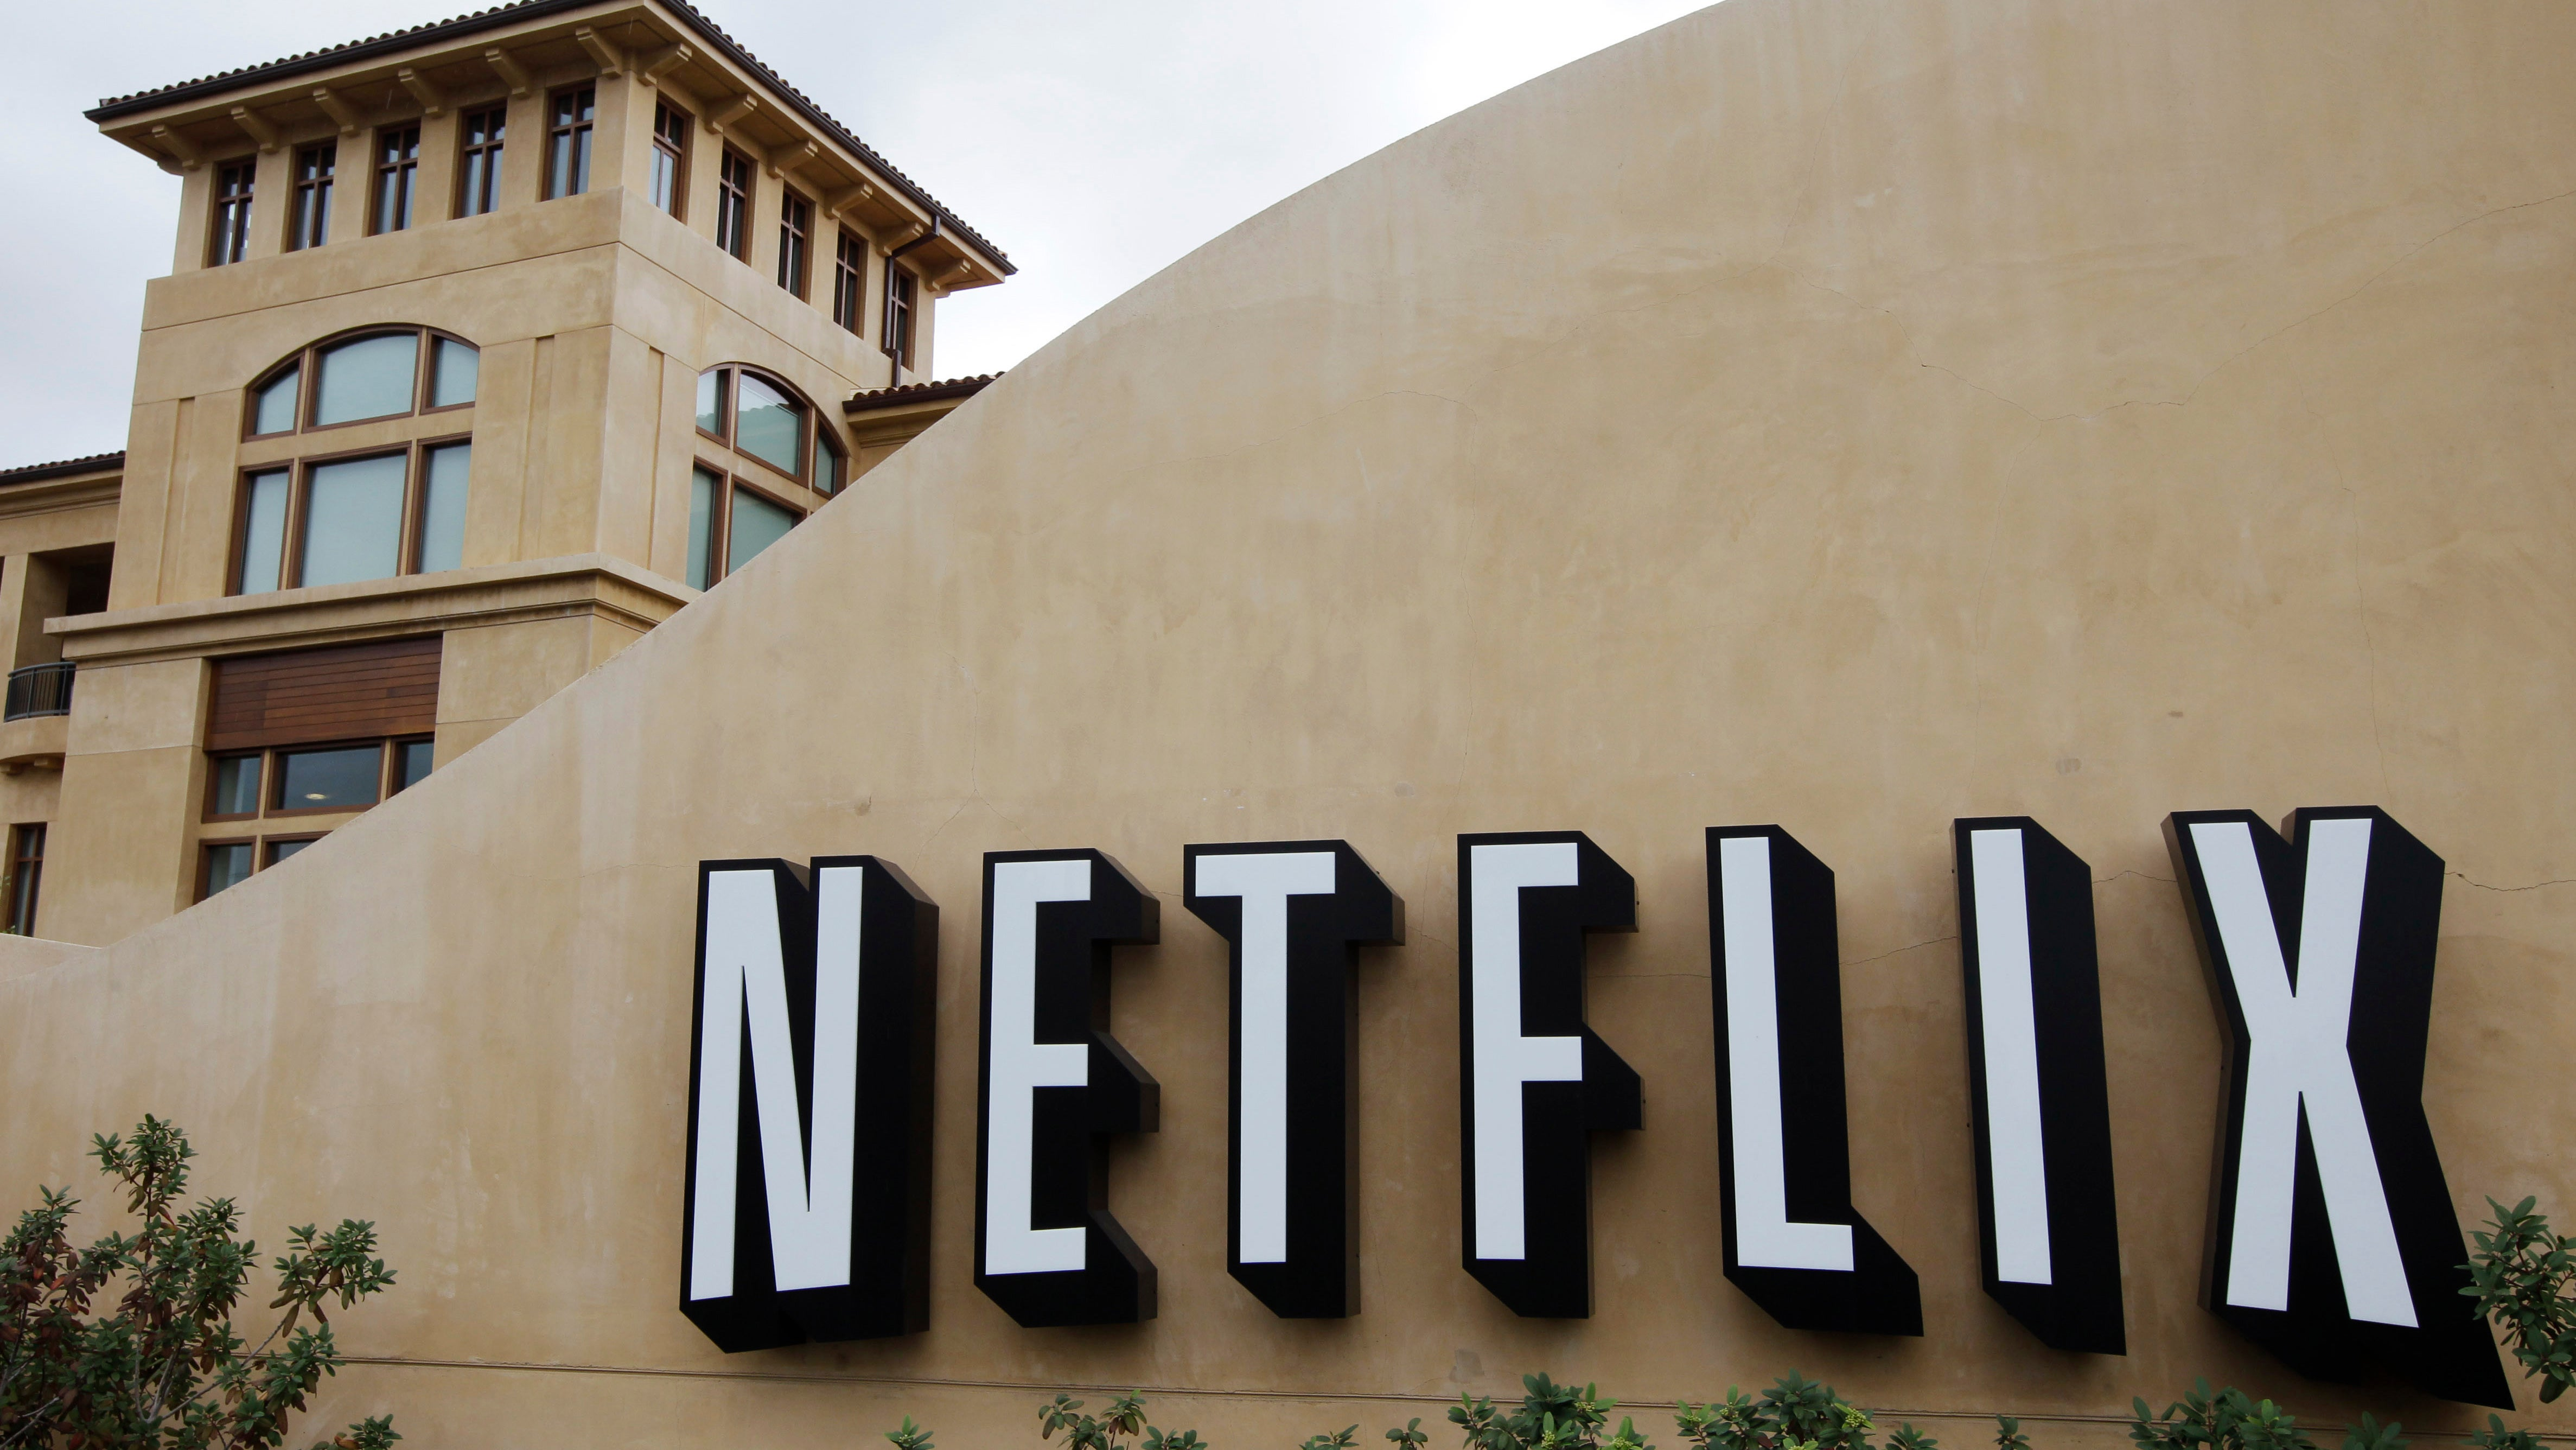 Report: Netflix Has Signed A 'Best Practices' Code In India To Avoid State Censorship